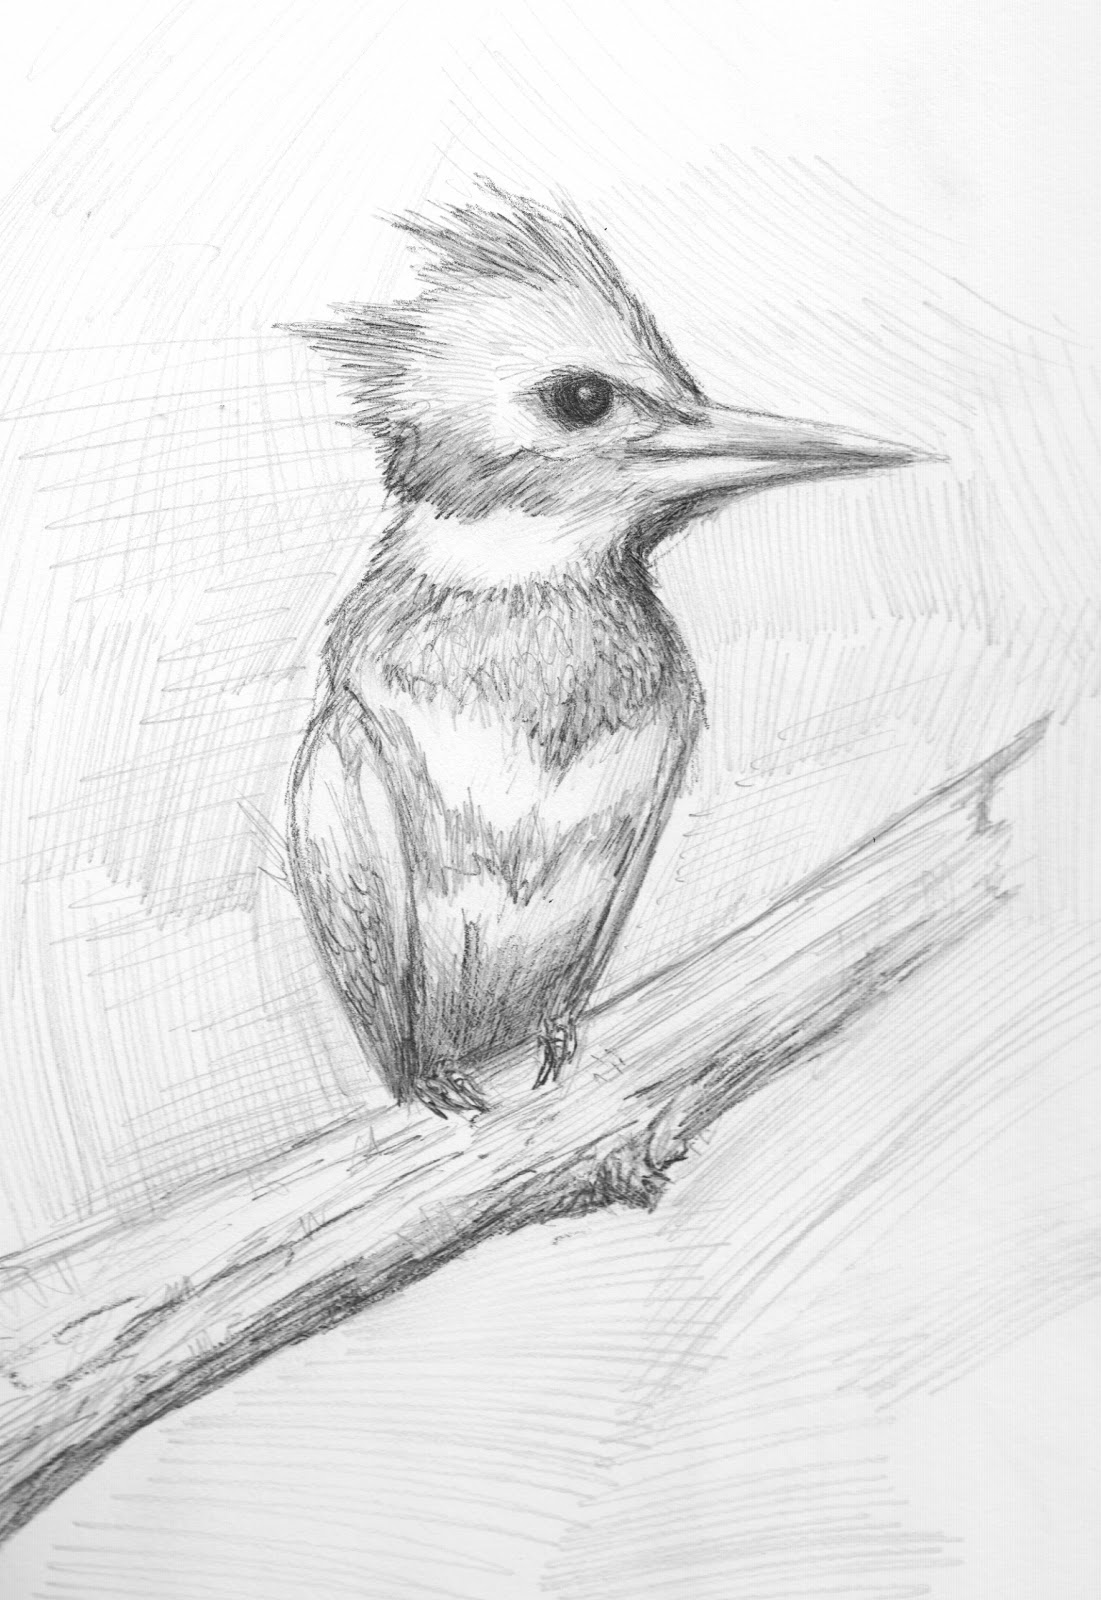 Bird pencil drawing kingfisher